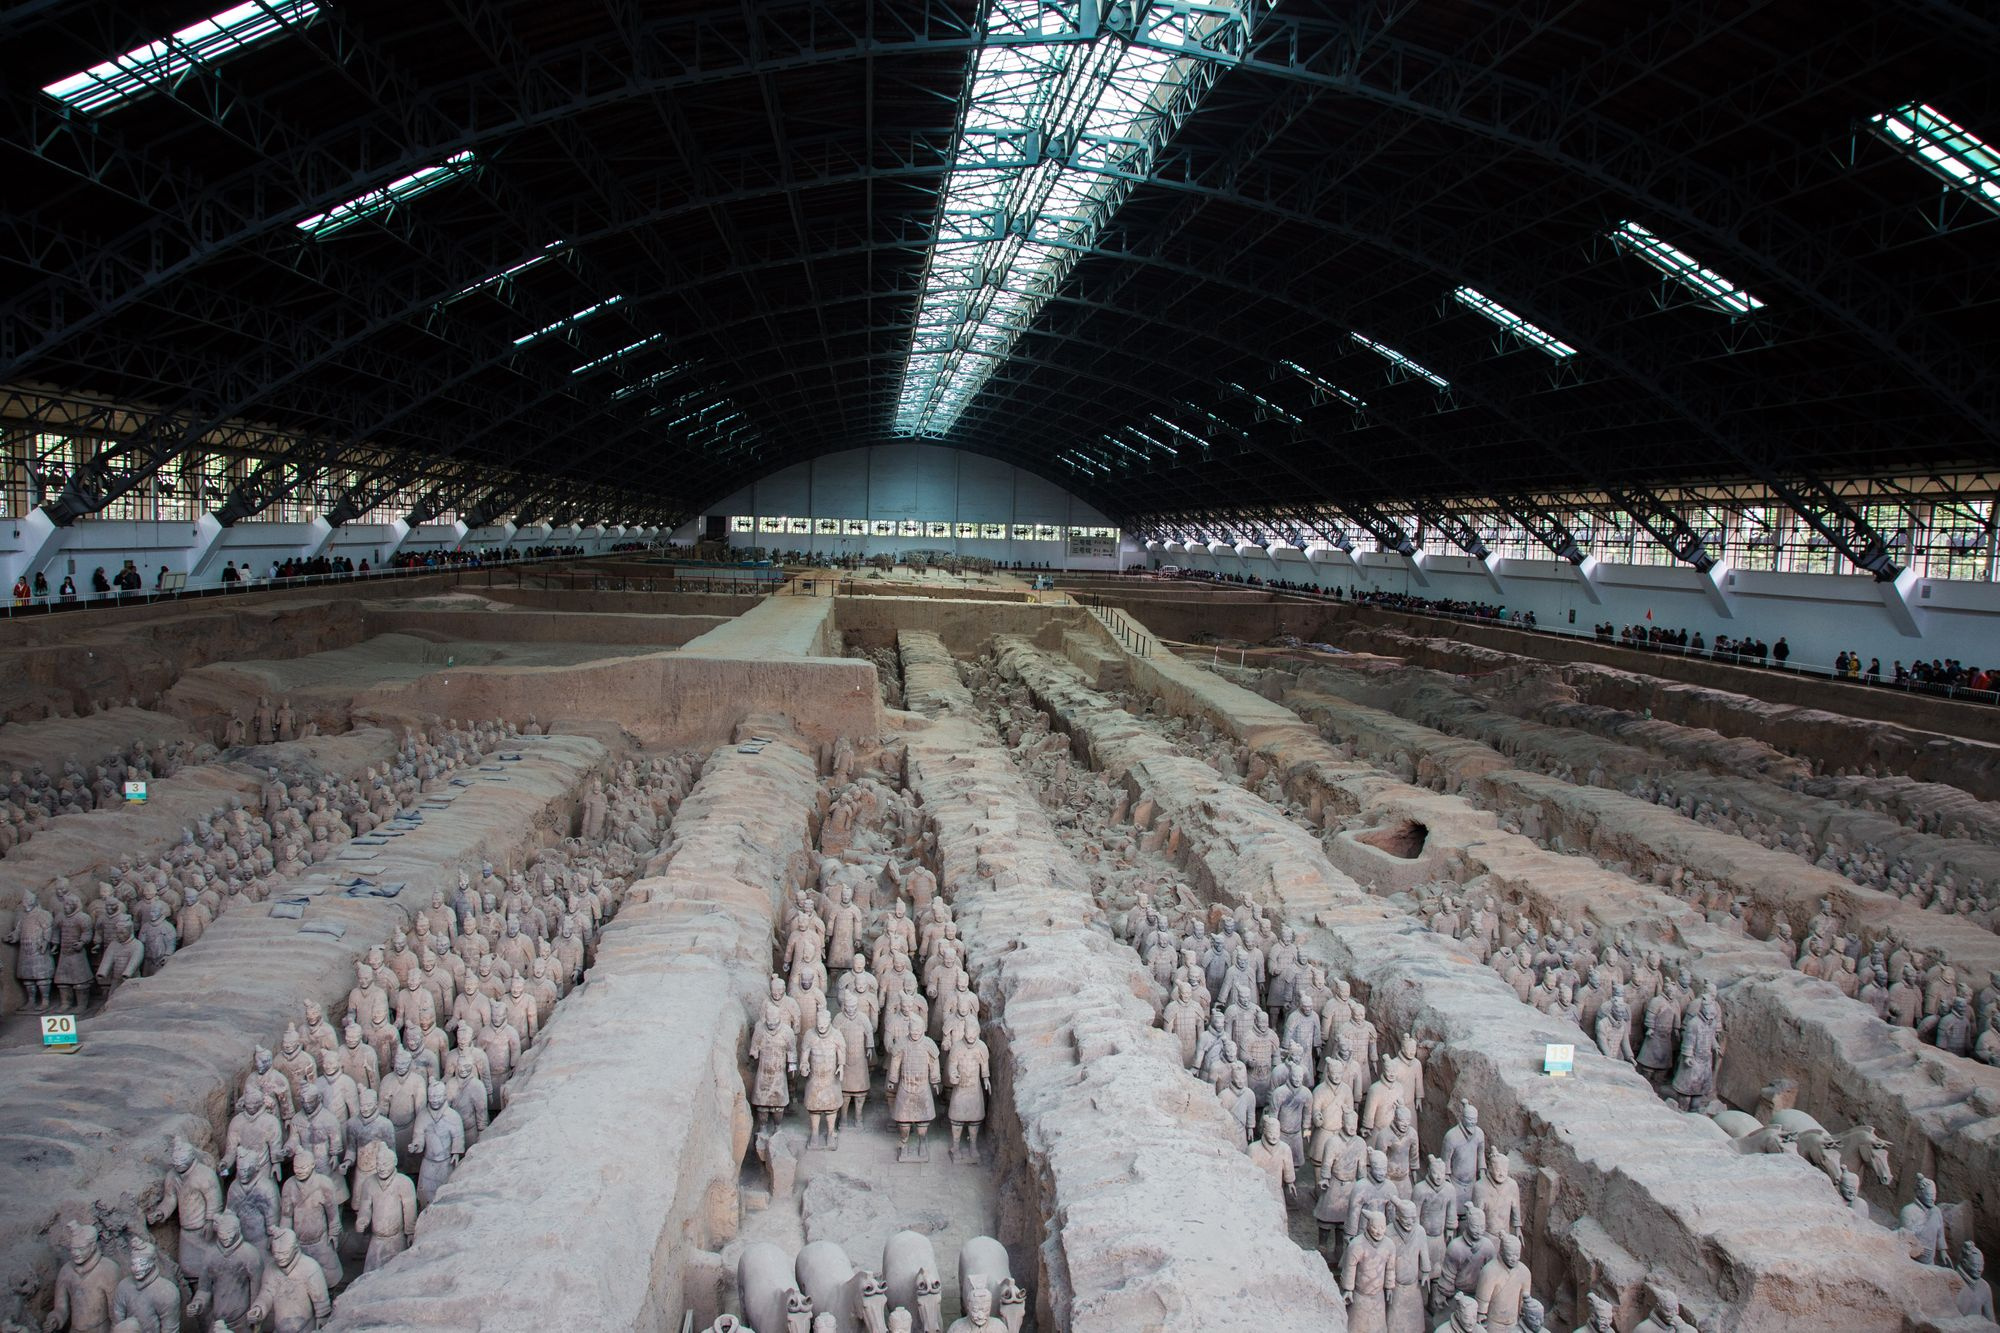 Terracotta_Army-_View_of_Pit_1